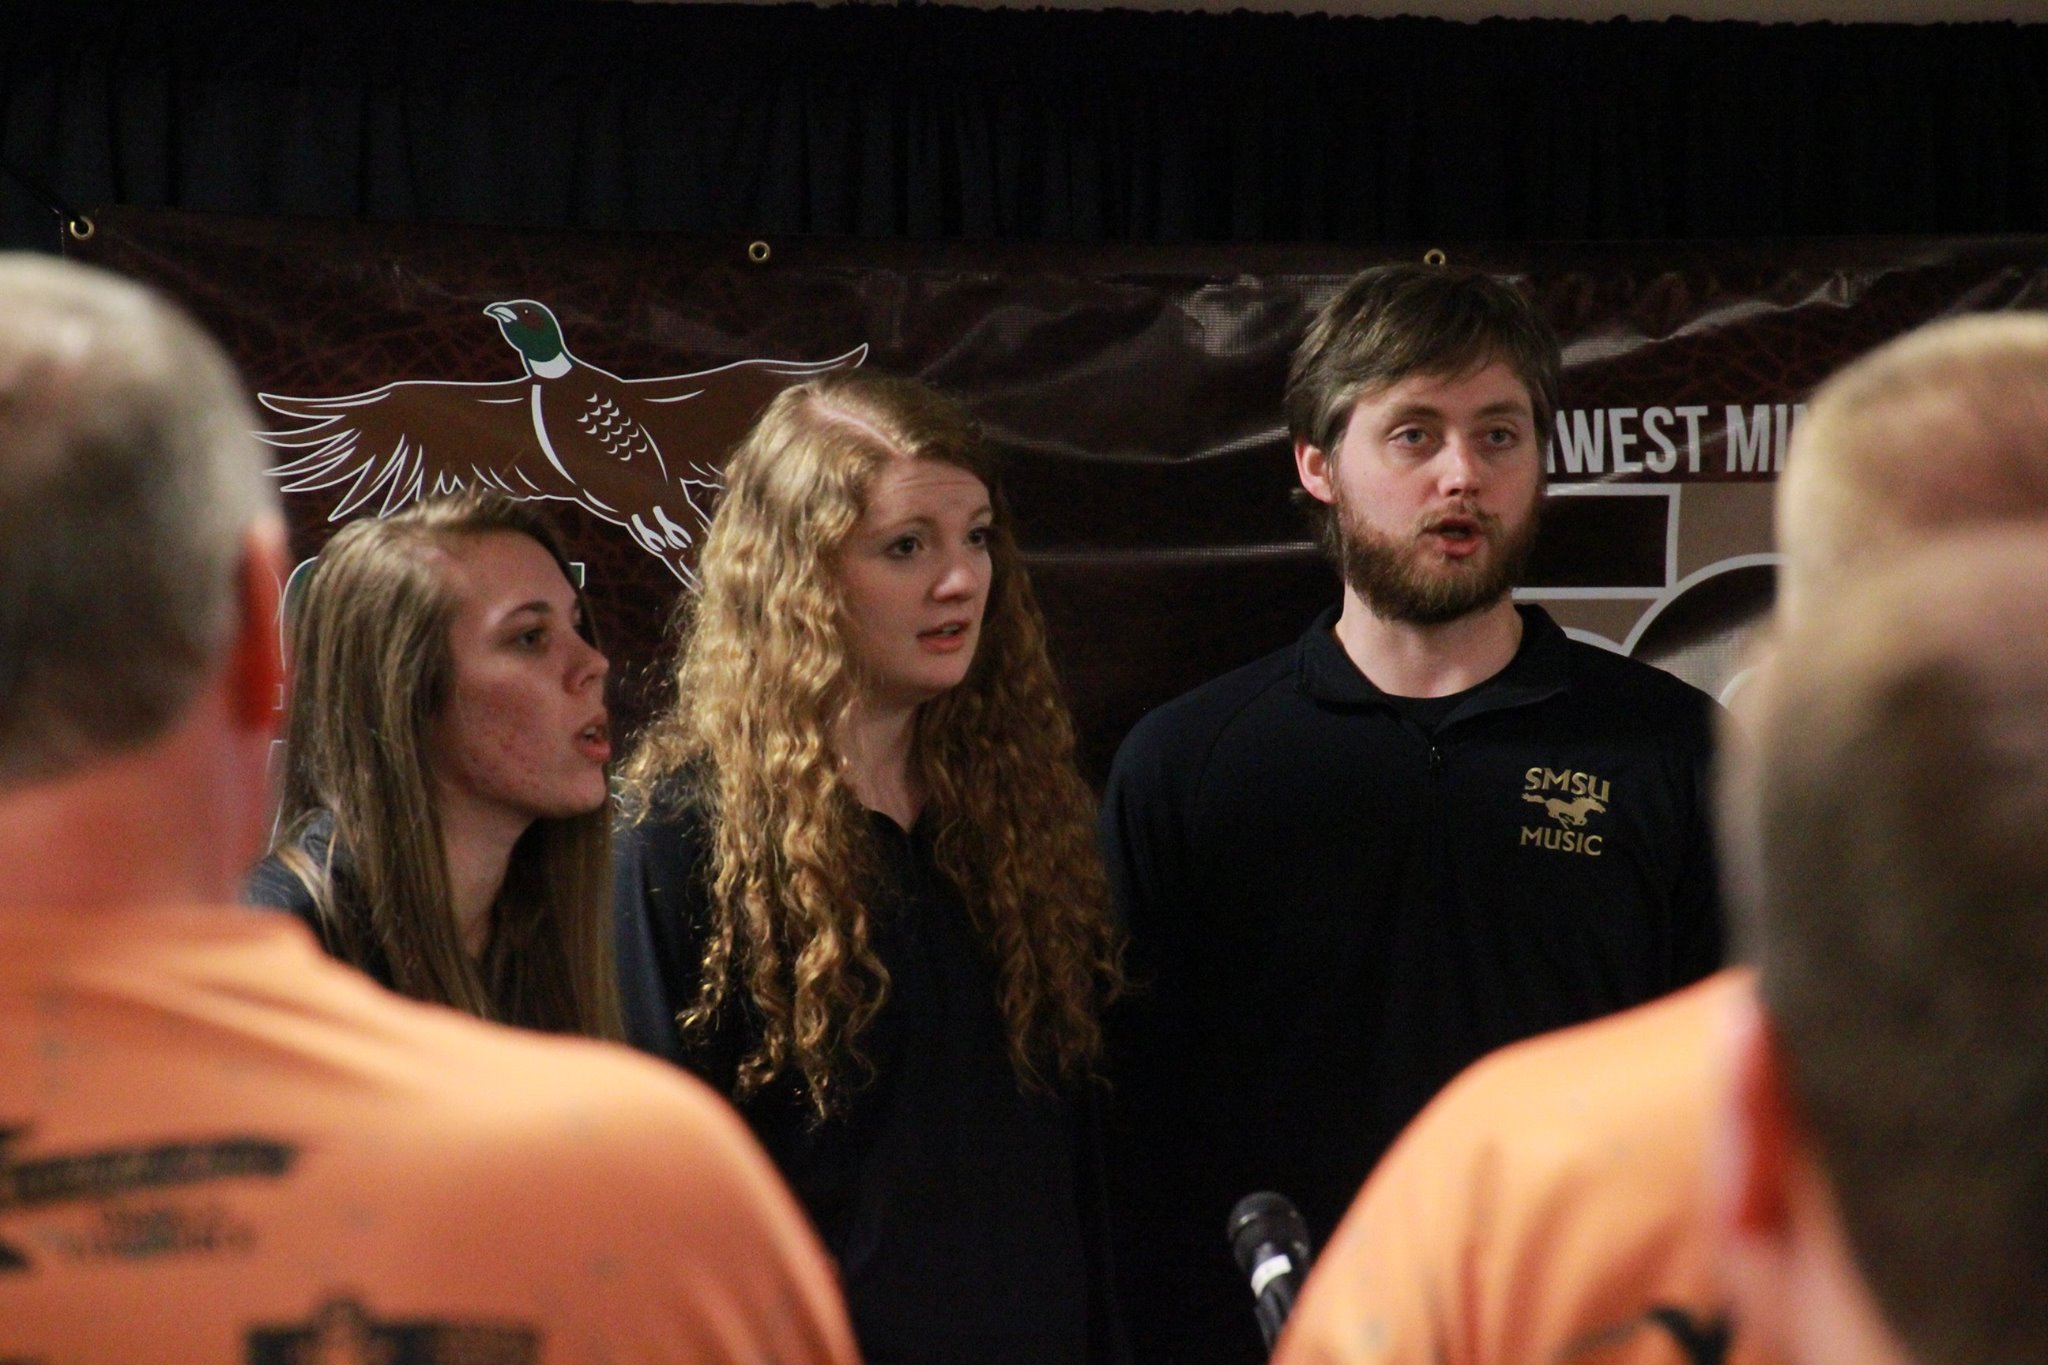 SMSU vocalists sing for the Governor's Pheasant Opener